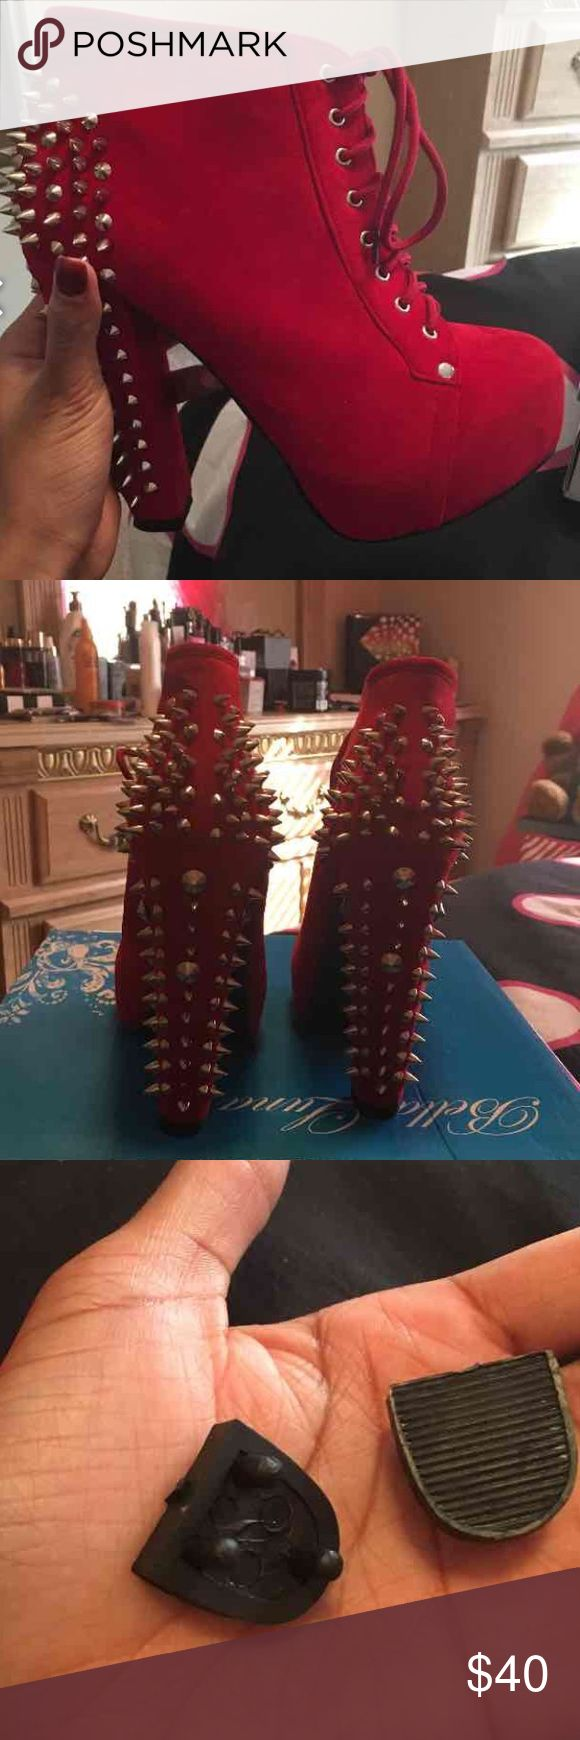 Red spiked heeled booties Red booties with spiked heels.  Size 6.  Never worn.  Comes with replacement heel bottoms.  Smoke free home.  Price is negotiable Shoes Ankle Boots & Booties